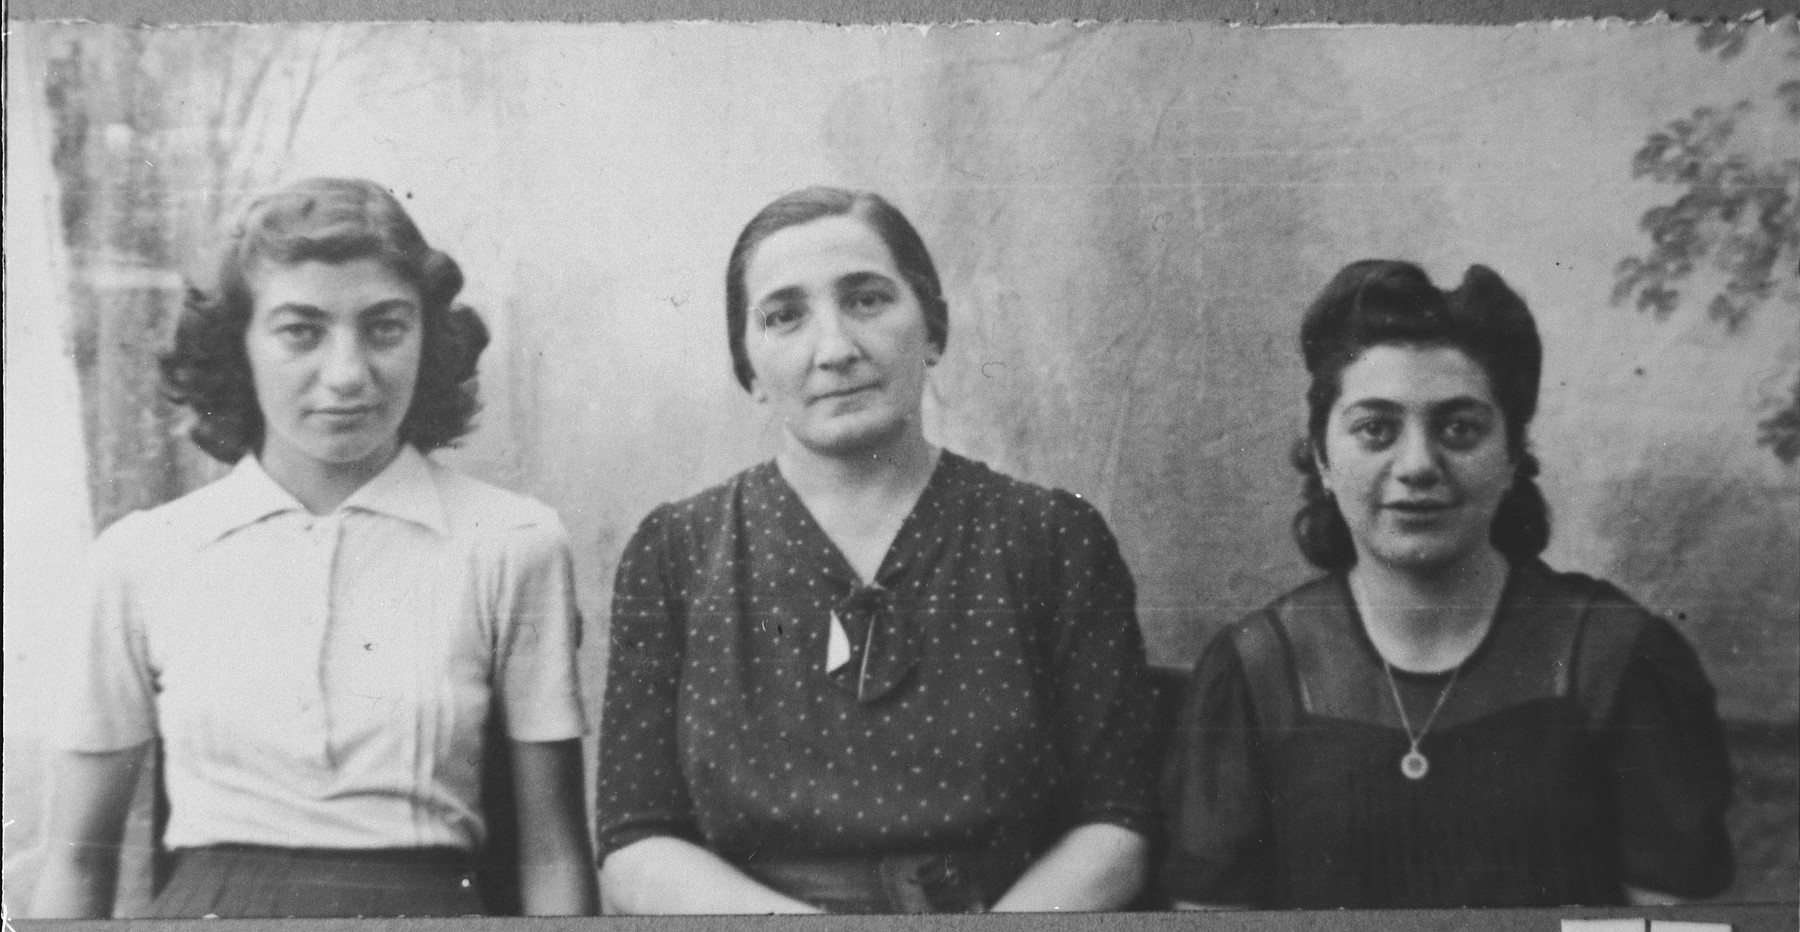 Portrait of Lena Anaf, wife of Yosef Anaf, with her two daughters, Bulisa (left) and Rebeka (right).  Bulisa and Rebeka were students.  They lived at Gen. Boyevika 24 in Bitola.